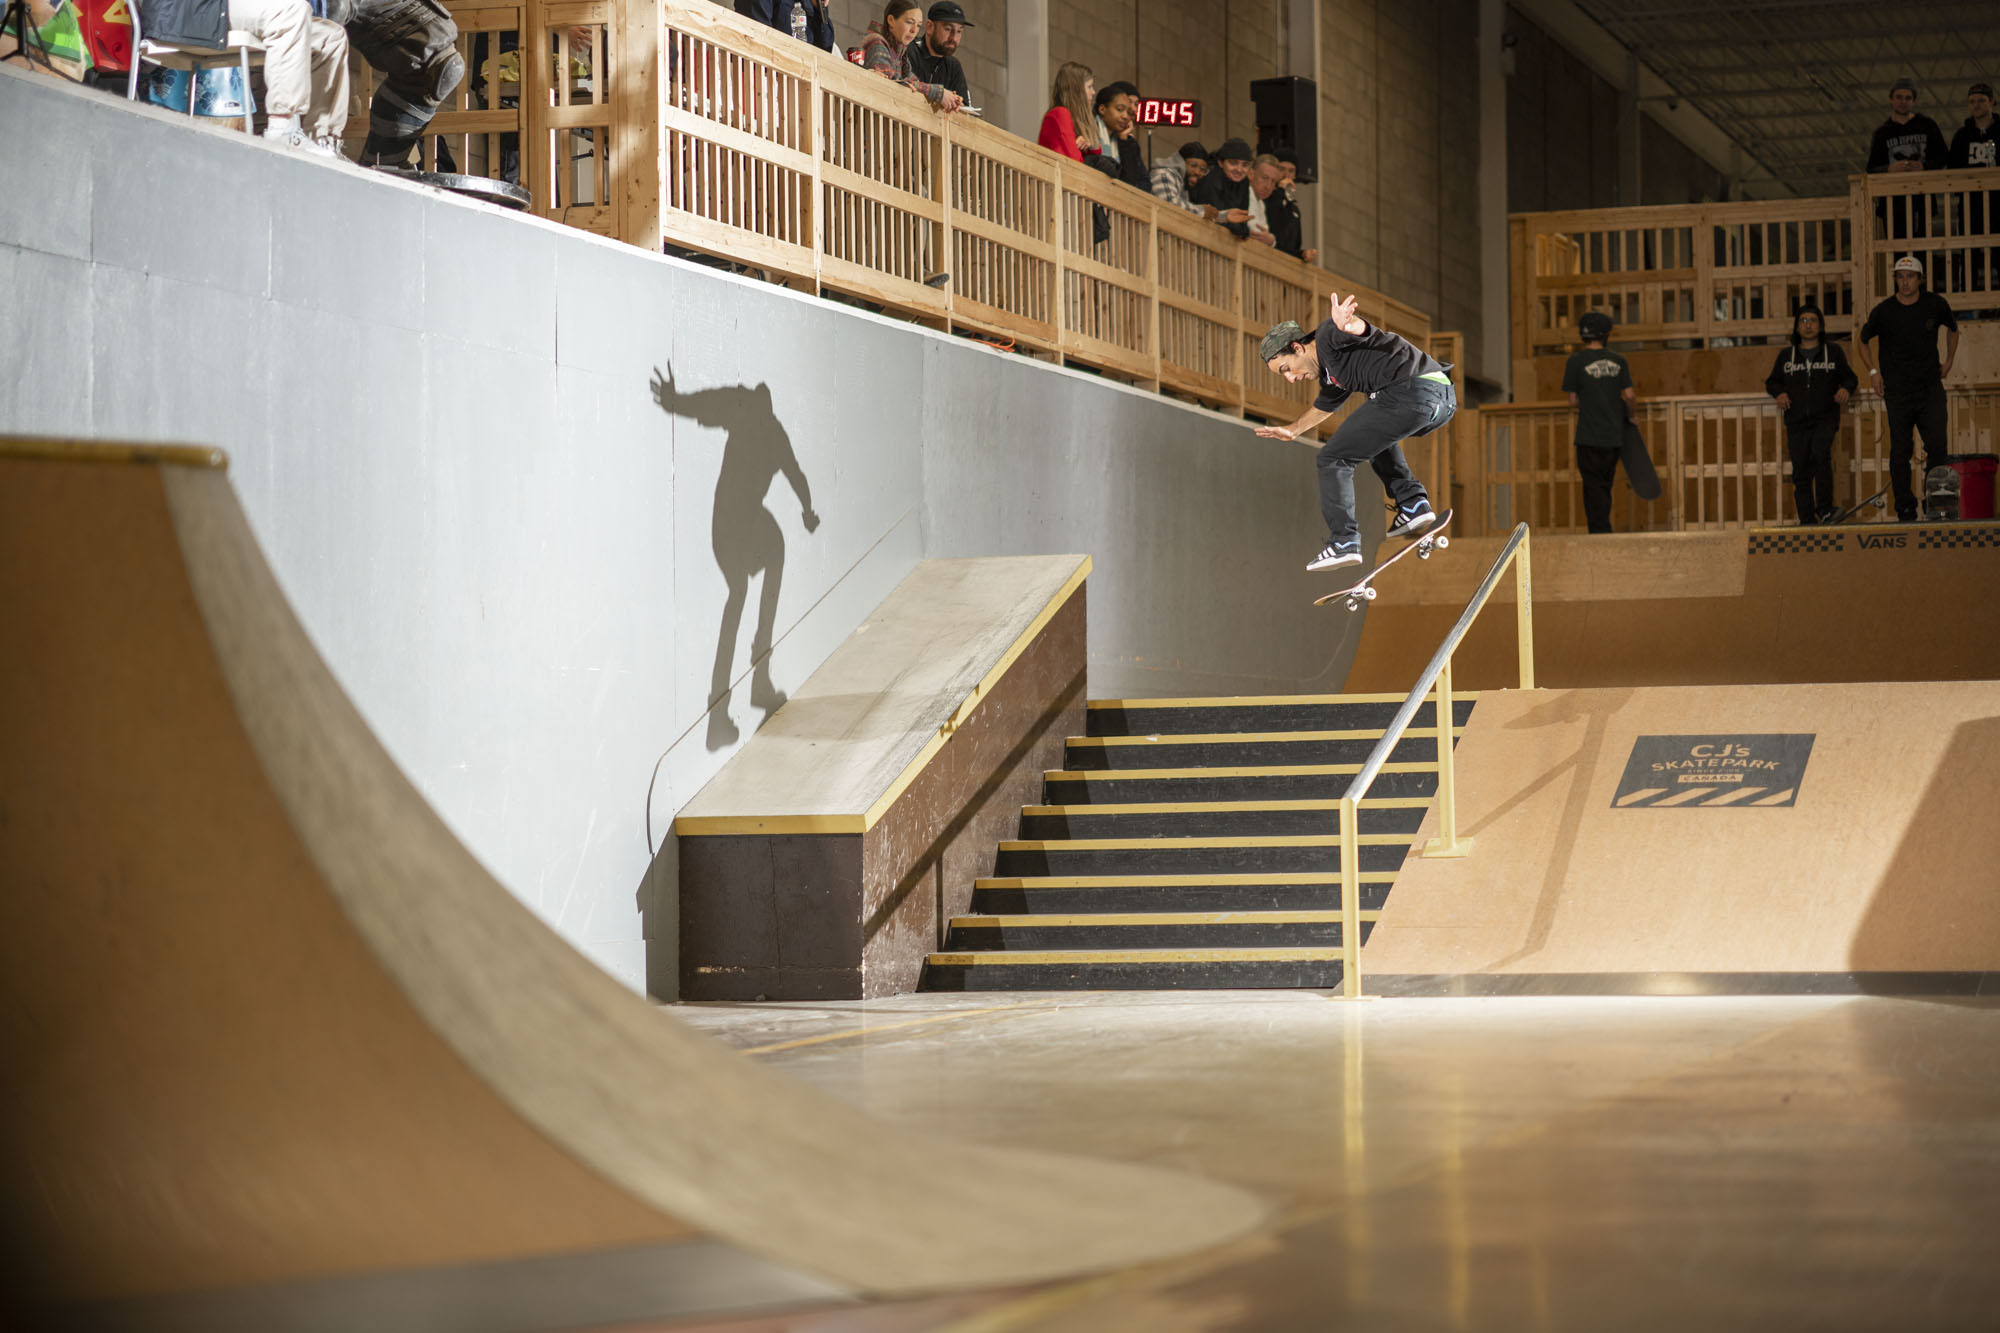 People watching Papa skate down stairs while he jumps and is airborne